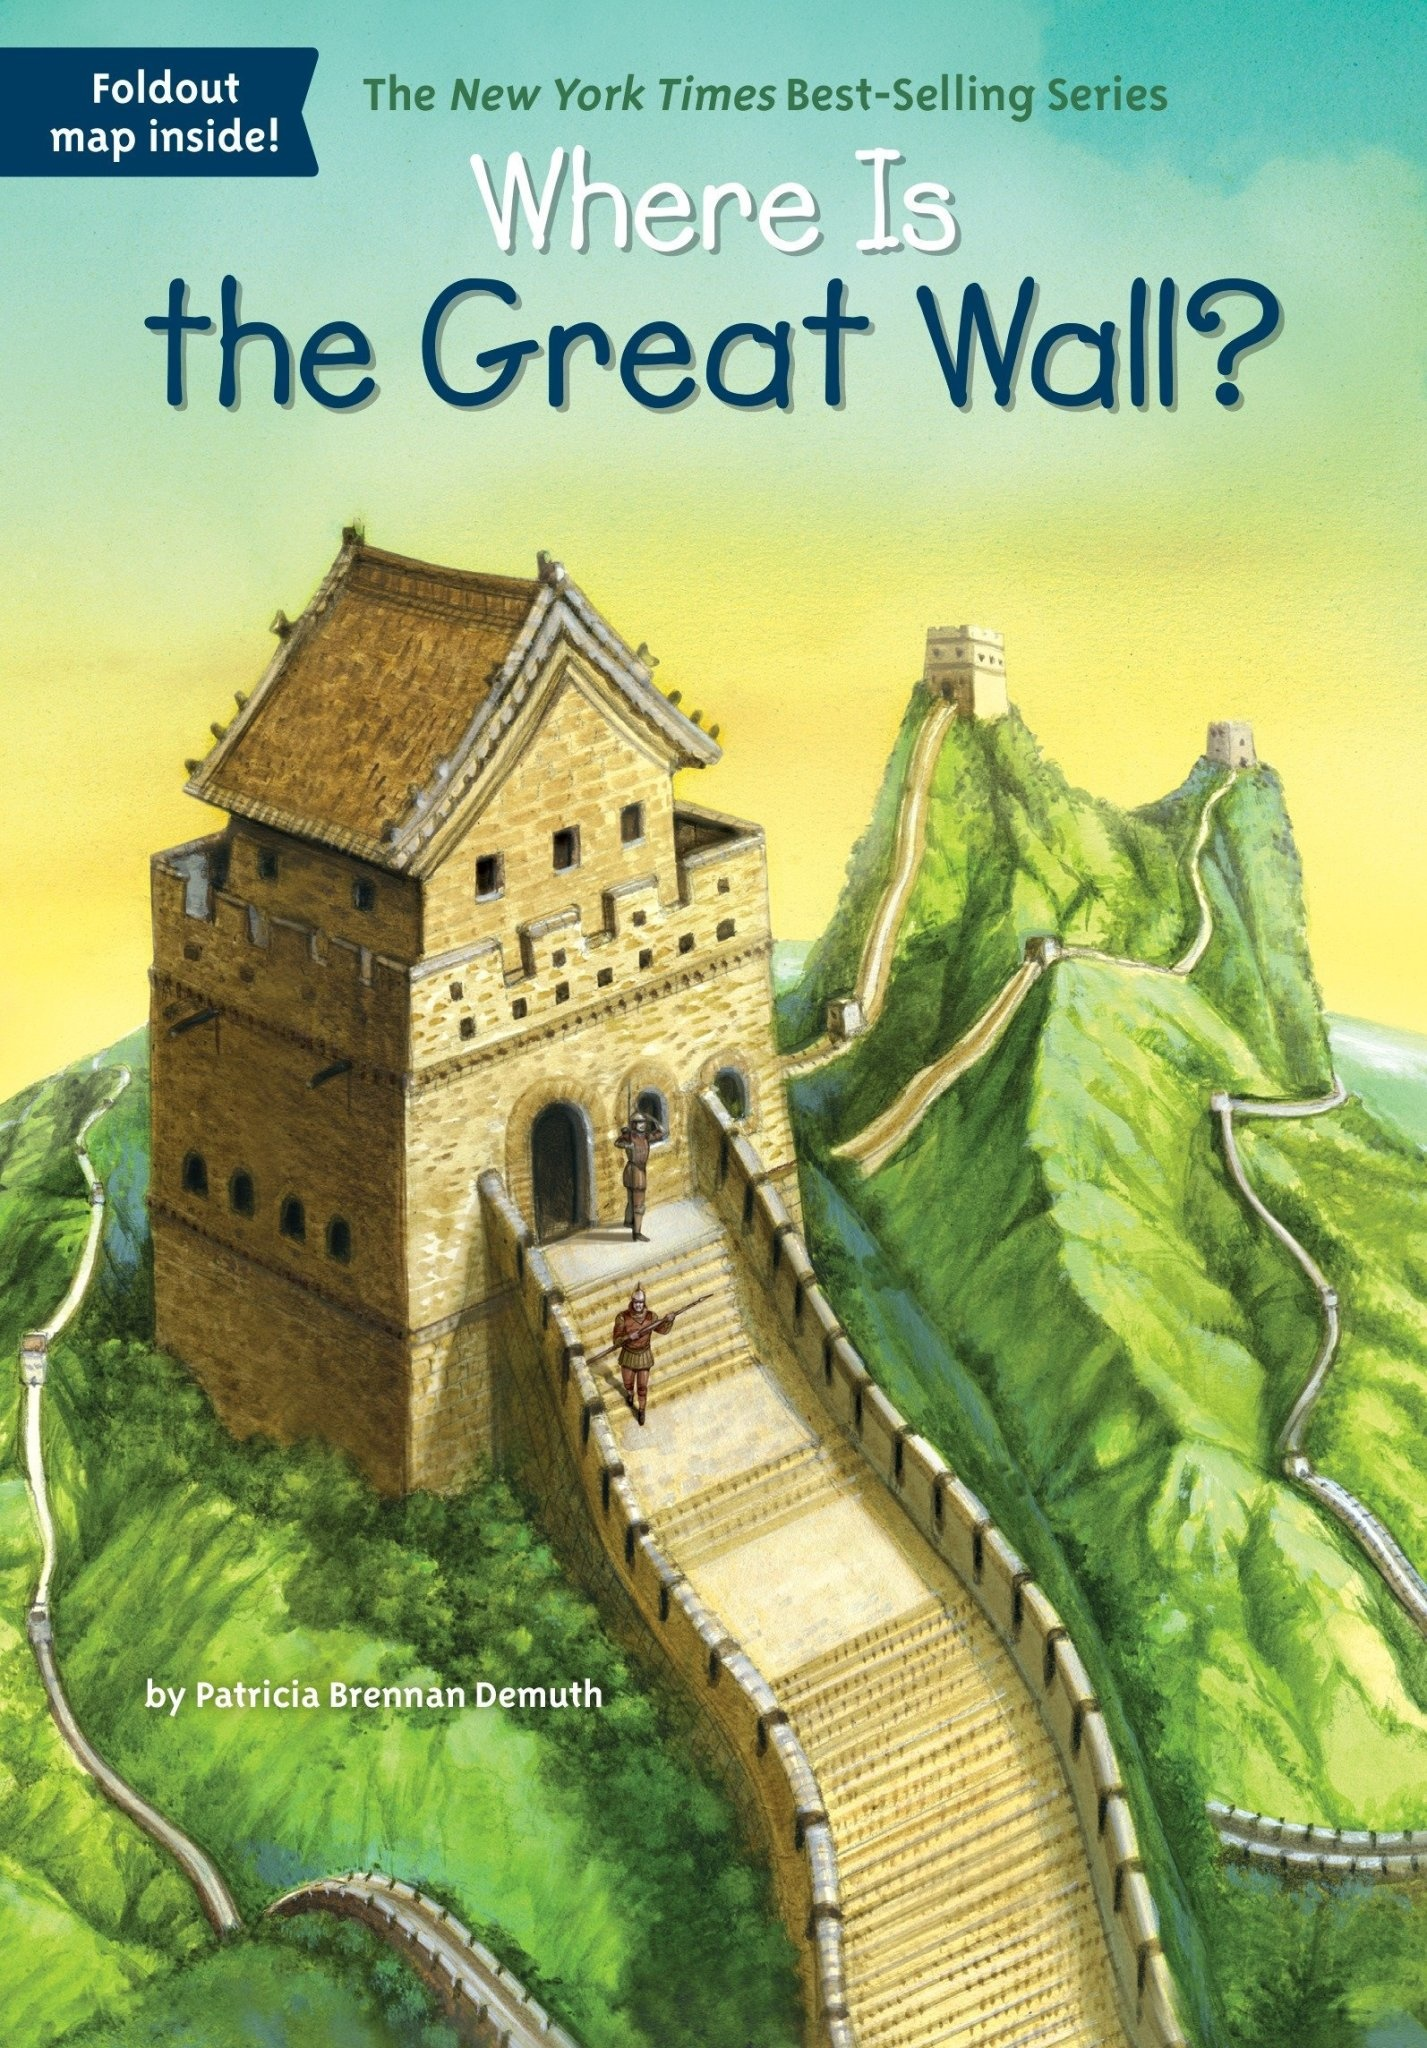 Where Is the Great Wall? Paperback Book